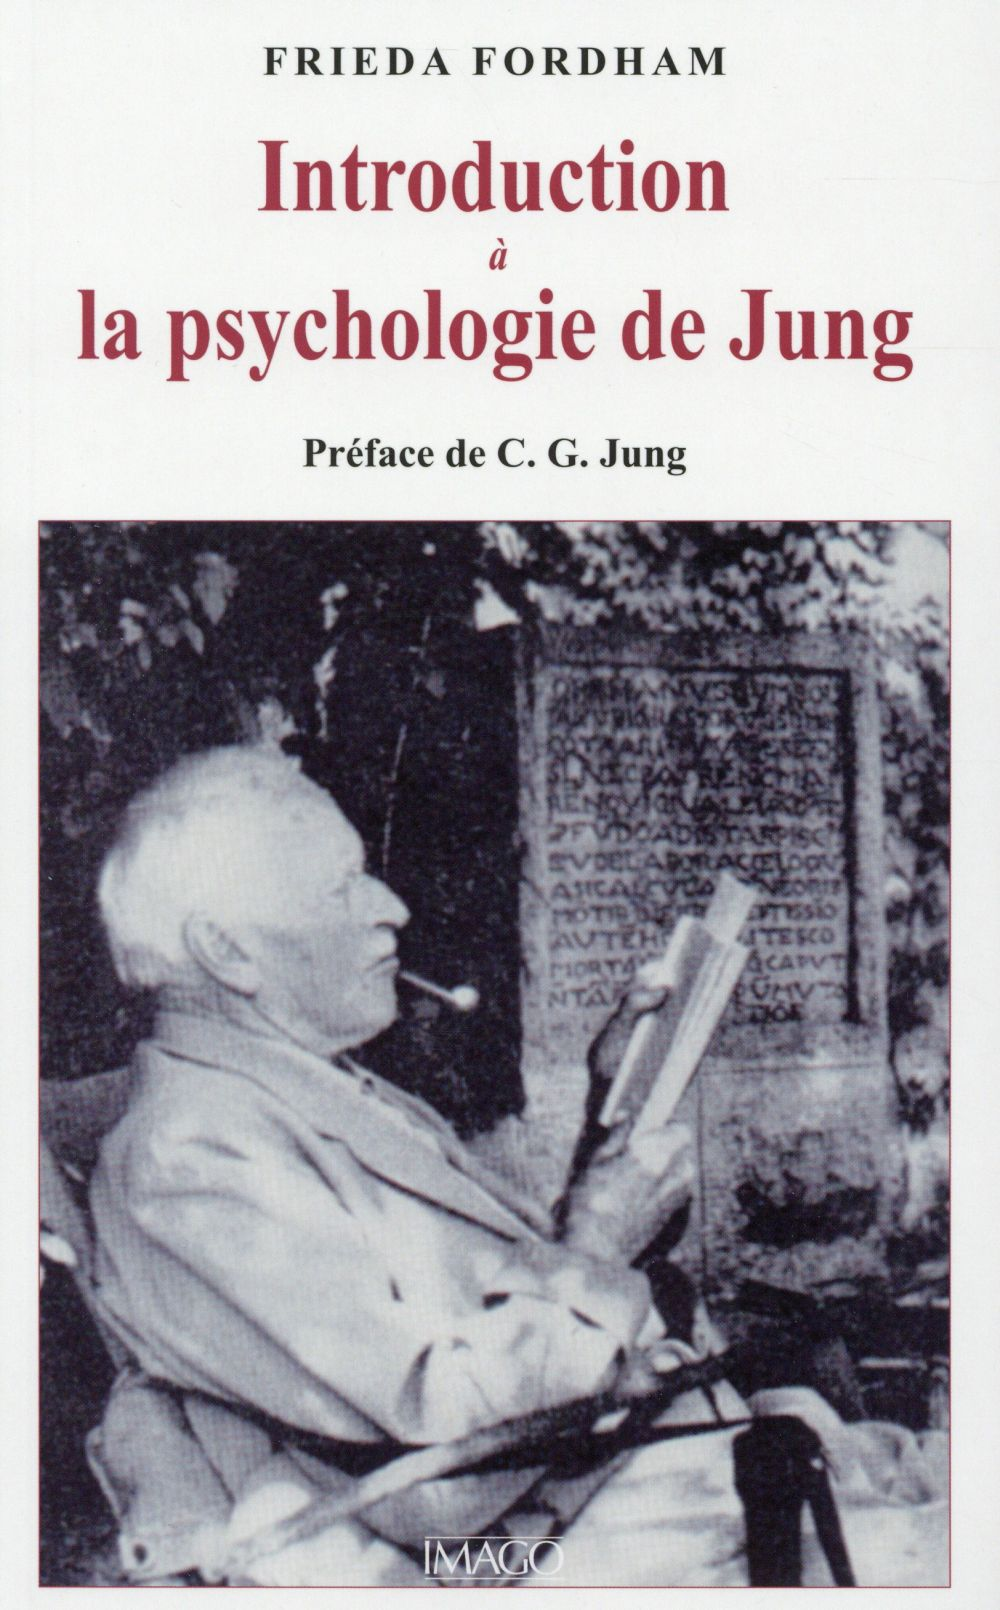 Introduction à la psychologie de jung (6e édition)